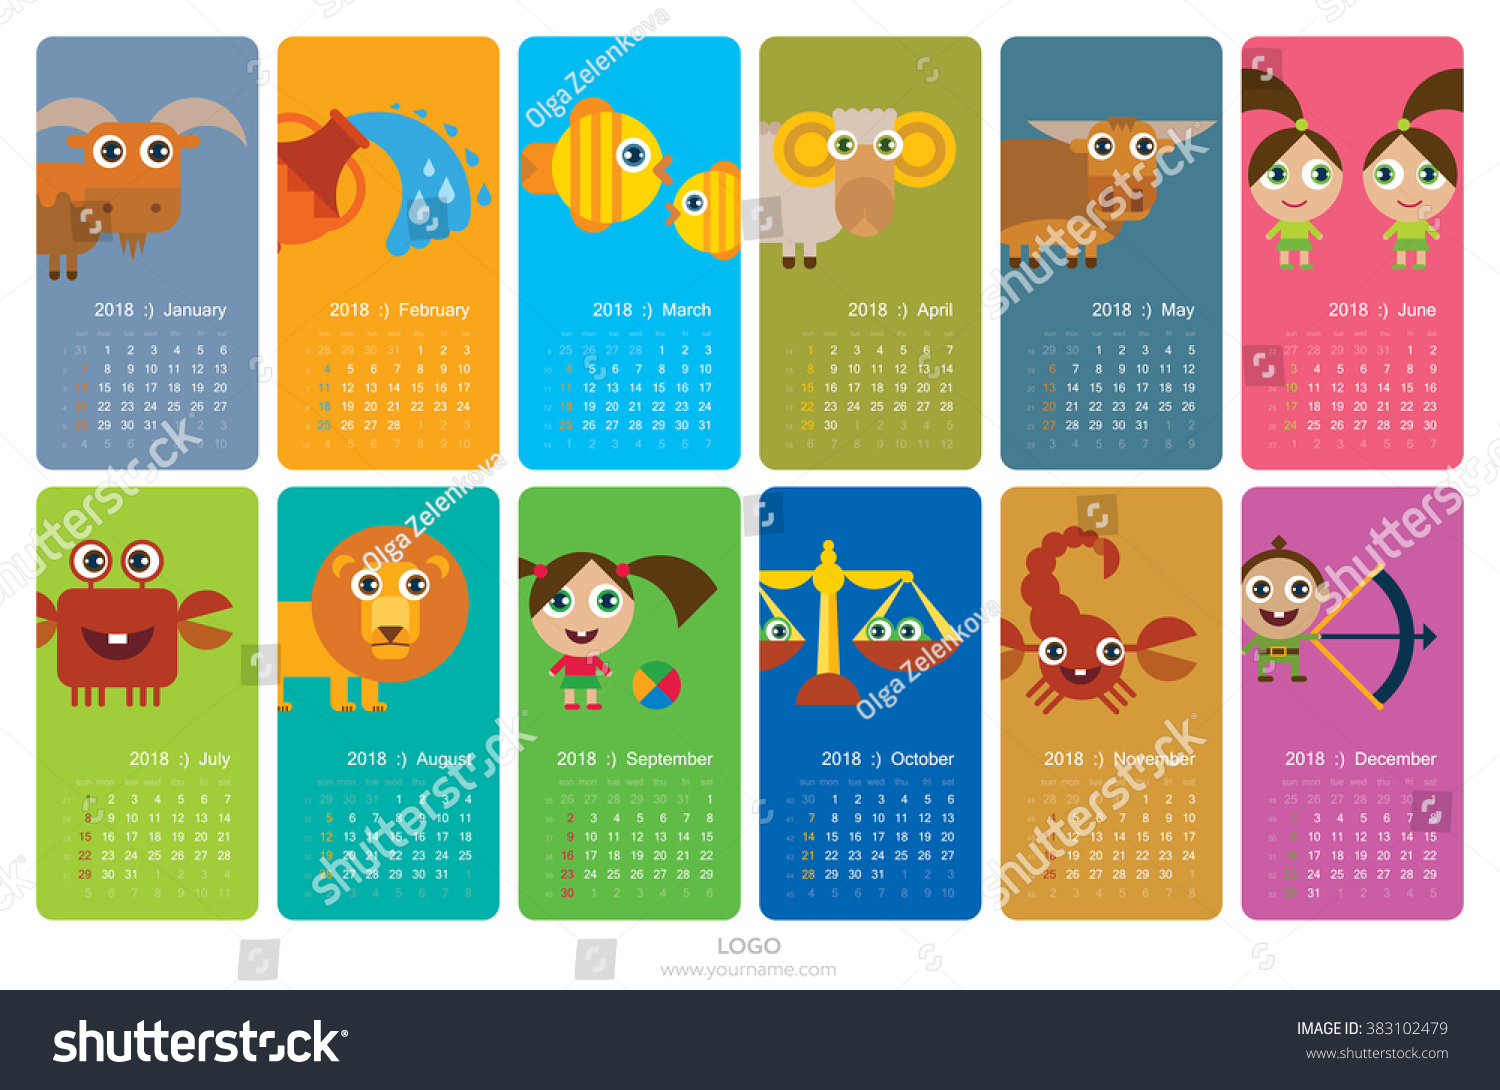 creative calendar 2018 wiith horoscope signs astrological zodiac symbols flat vector editable illustration best for kids products week start on sunday